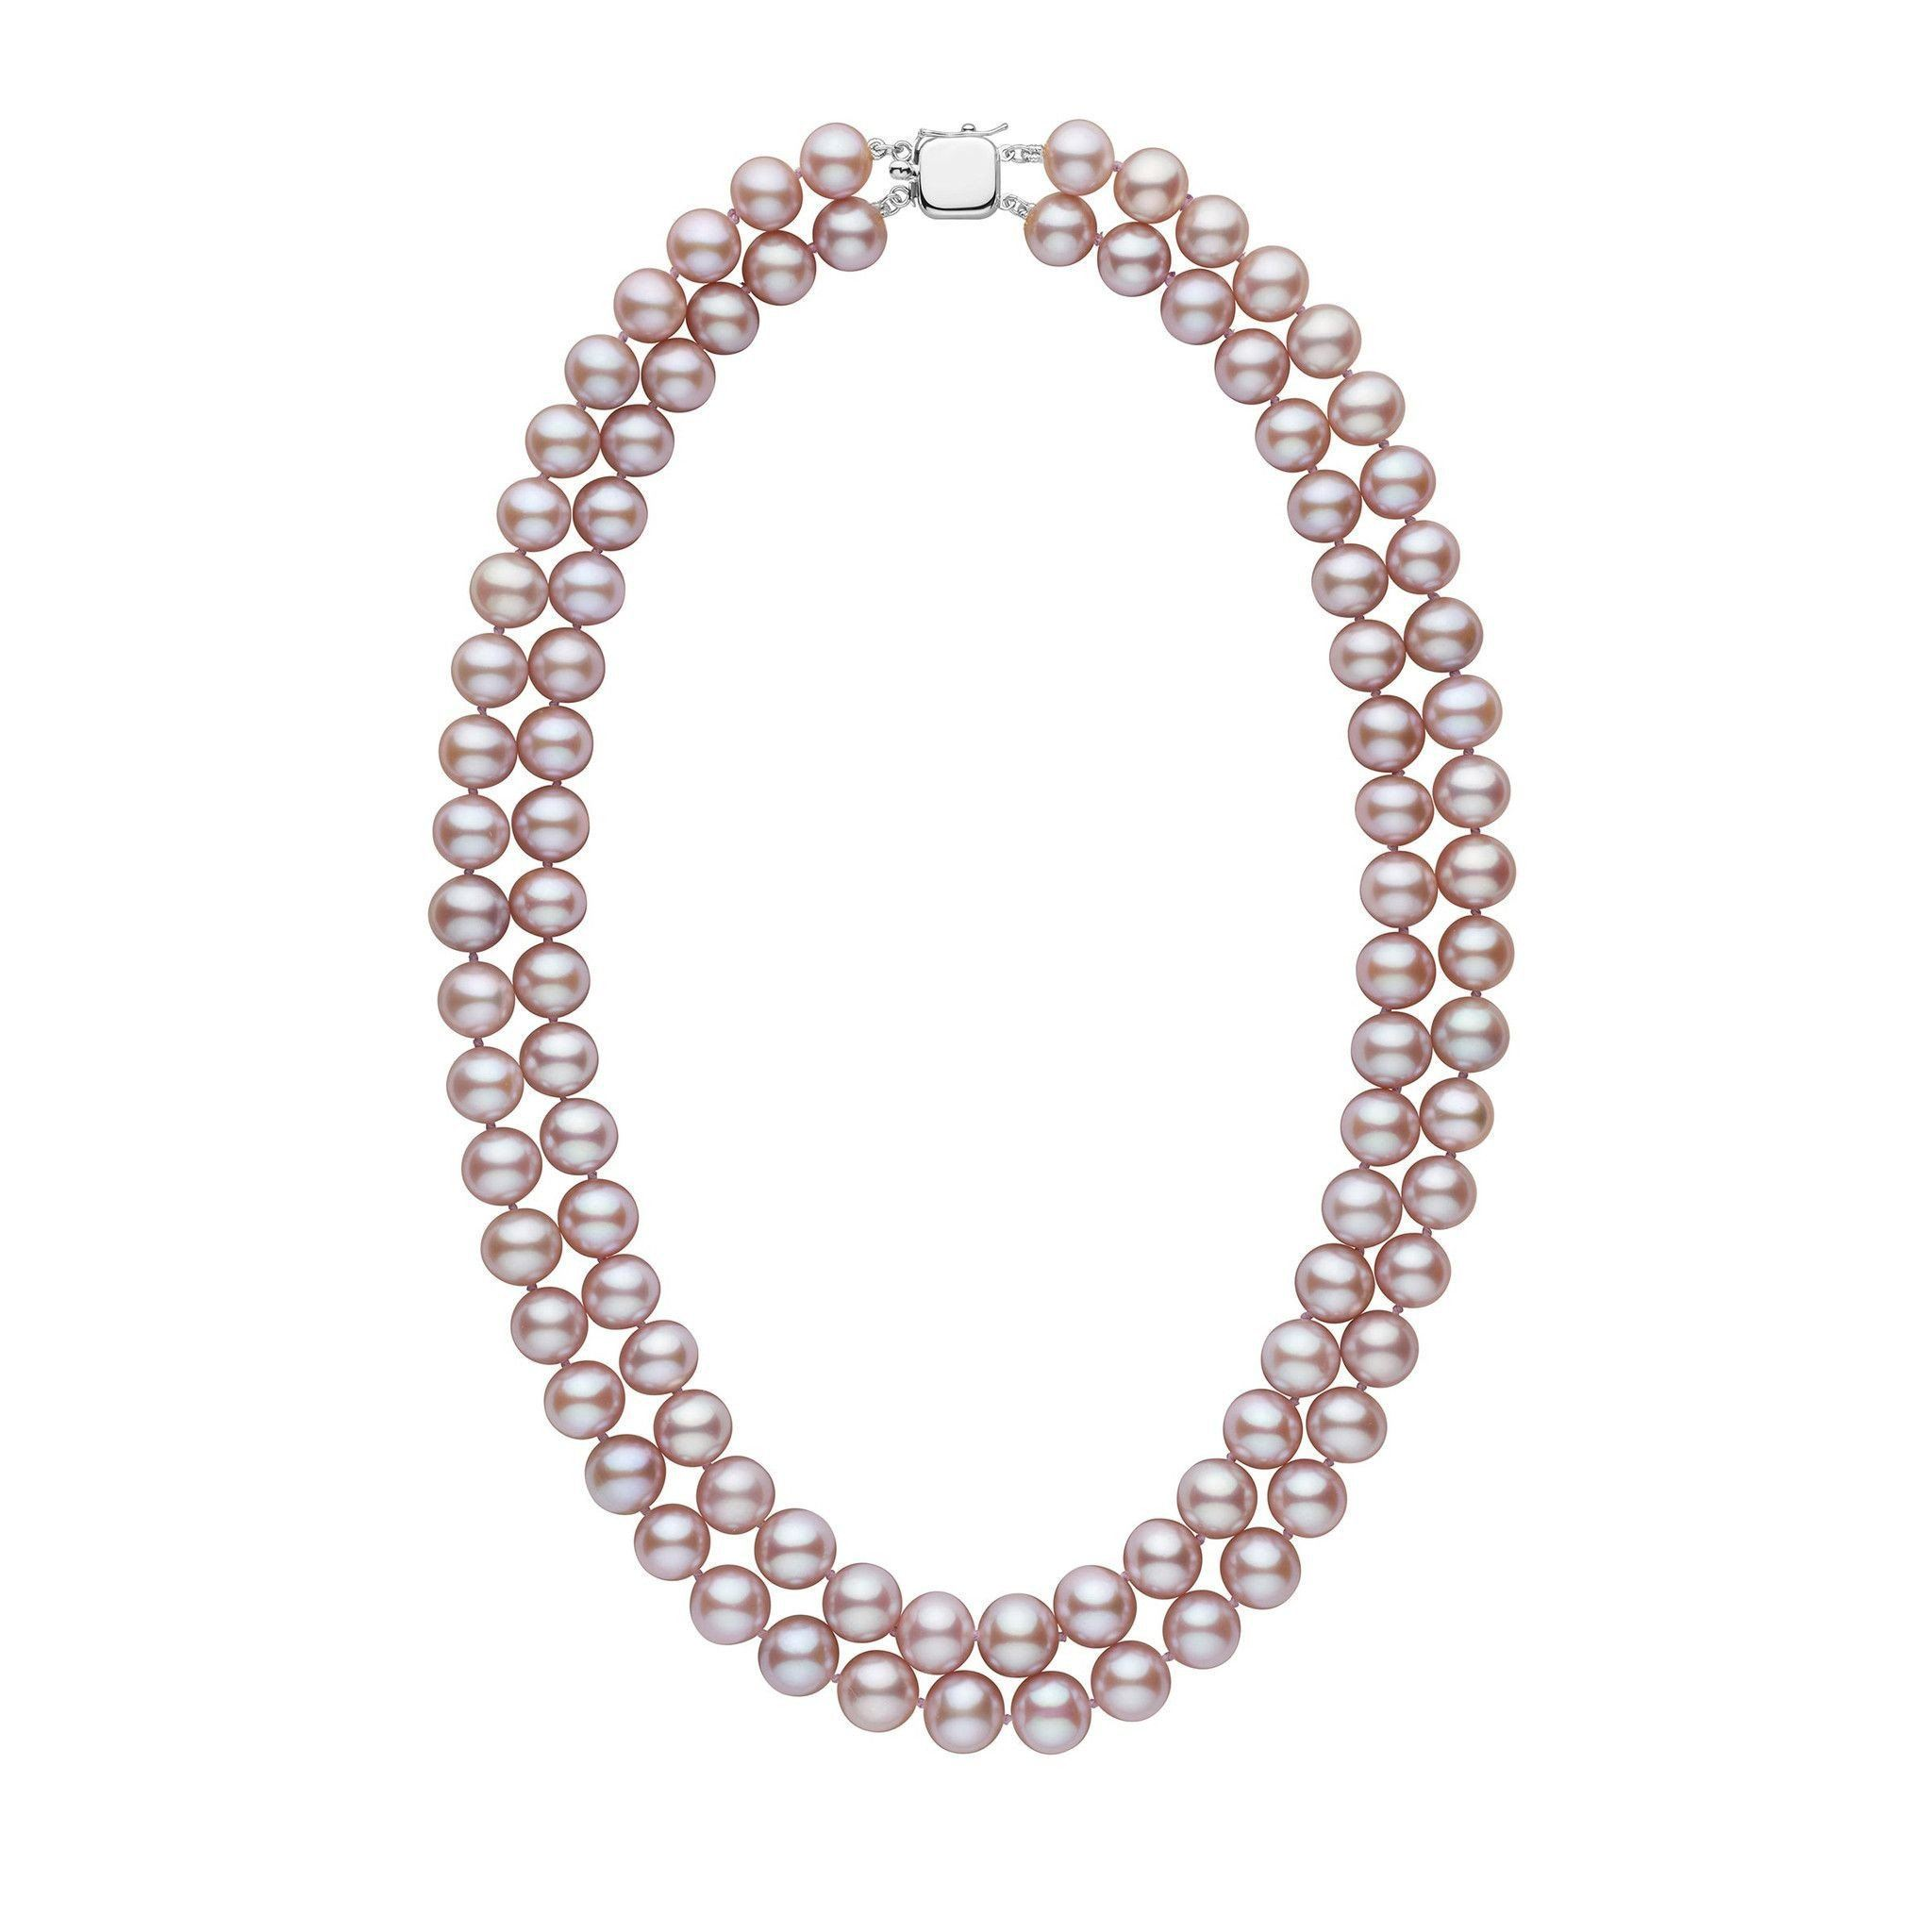 Double Strand 8.5-9.0 mm AA+ Lavender Freshwater Pearl Necklace